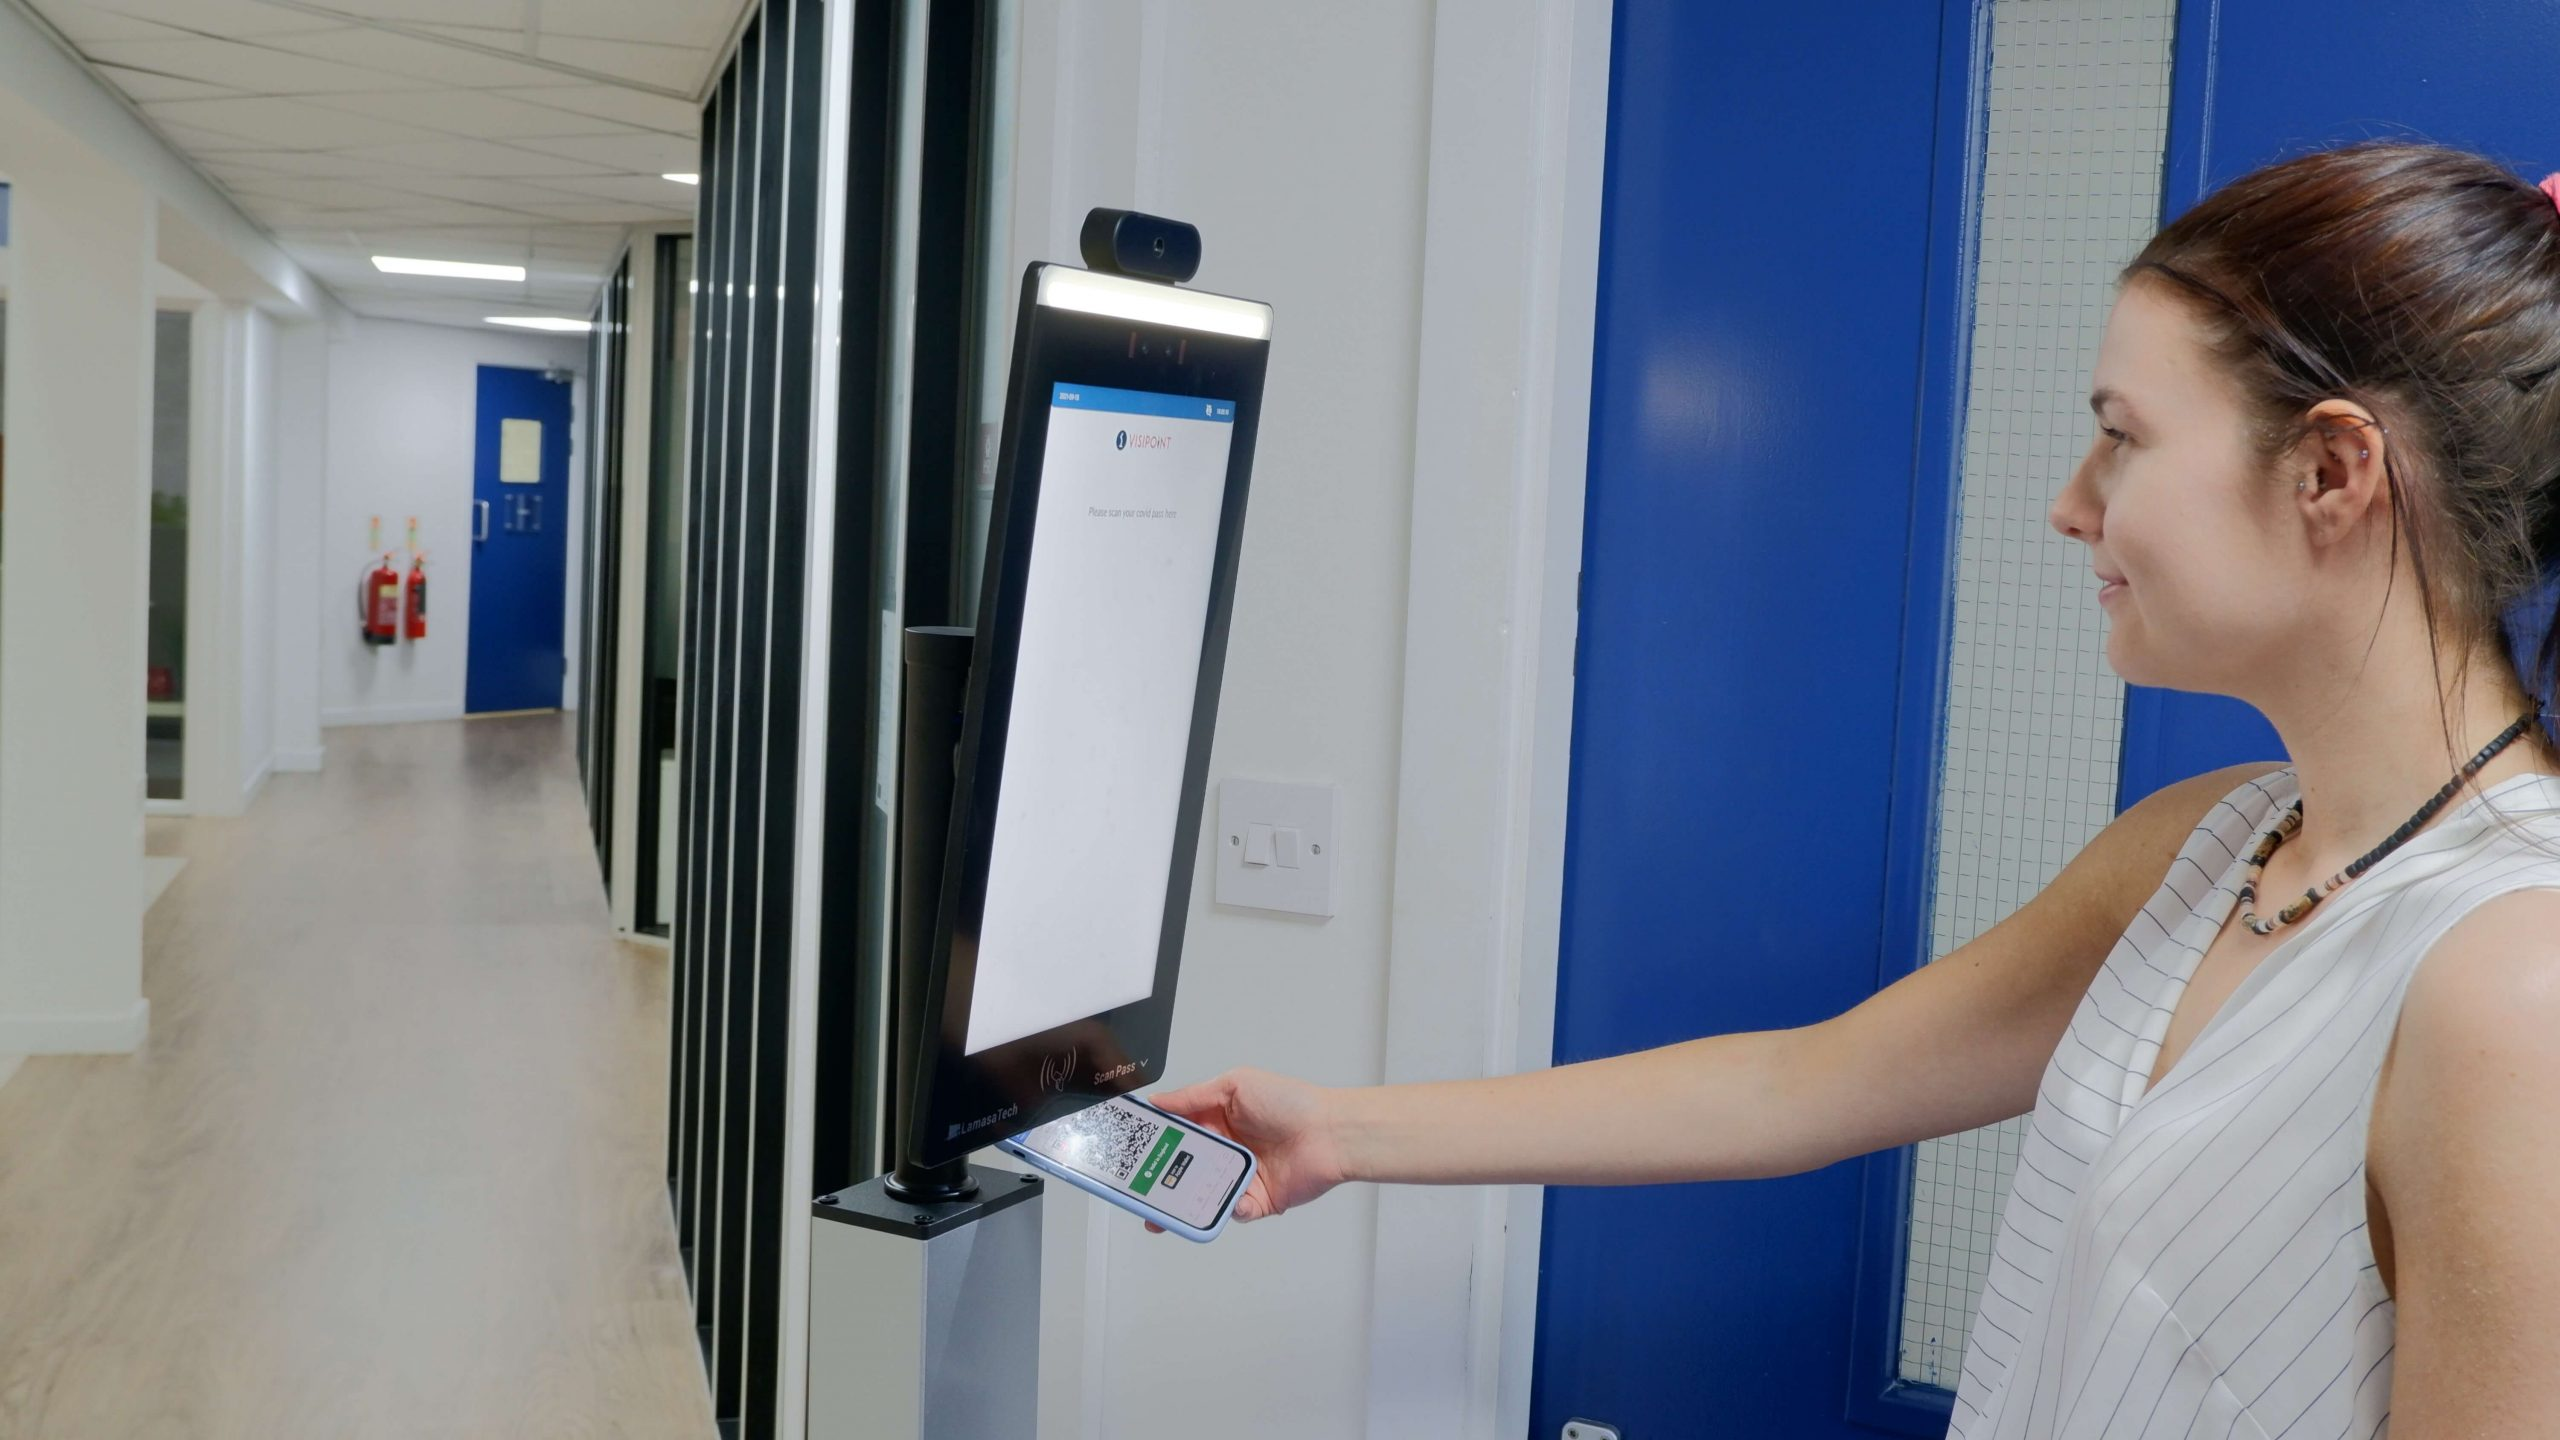 Person Scanning Covid-19 vaccination pass on kiosk